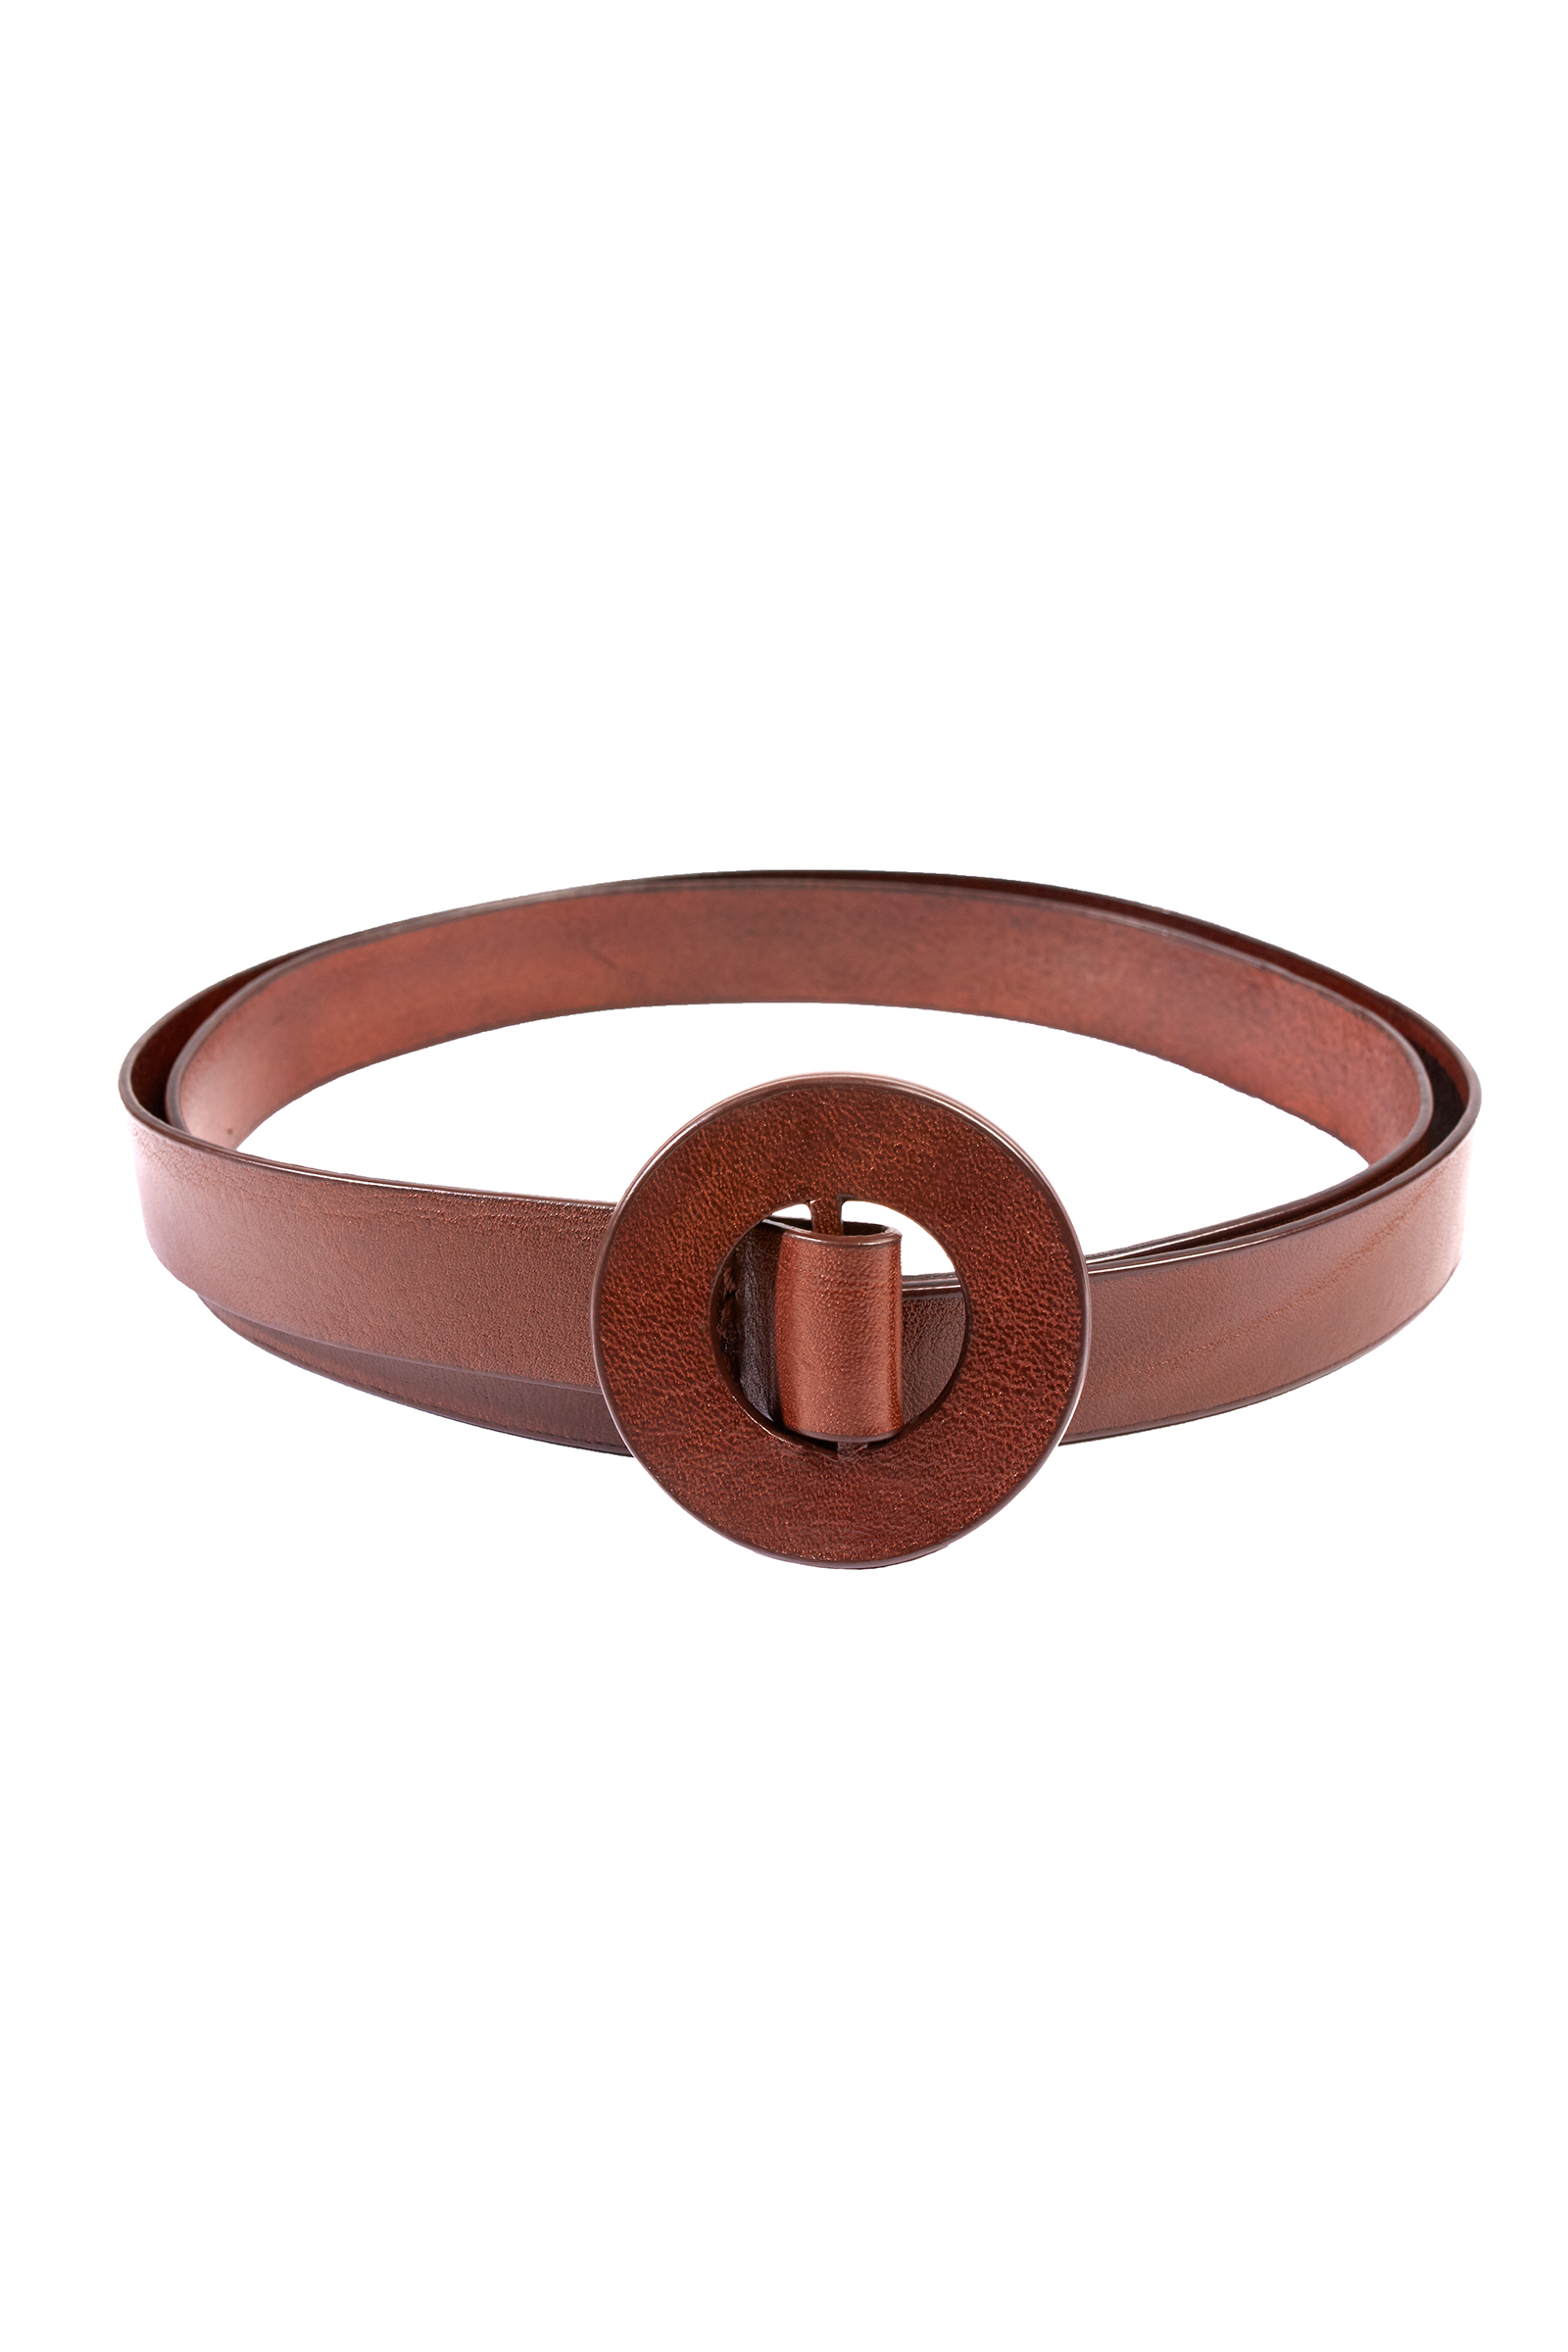 Aro, slim belt in maroon leather - Cortana